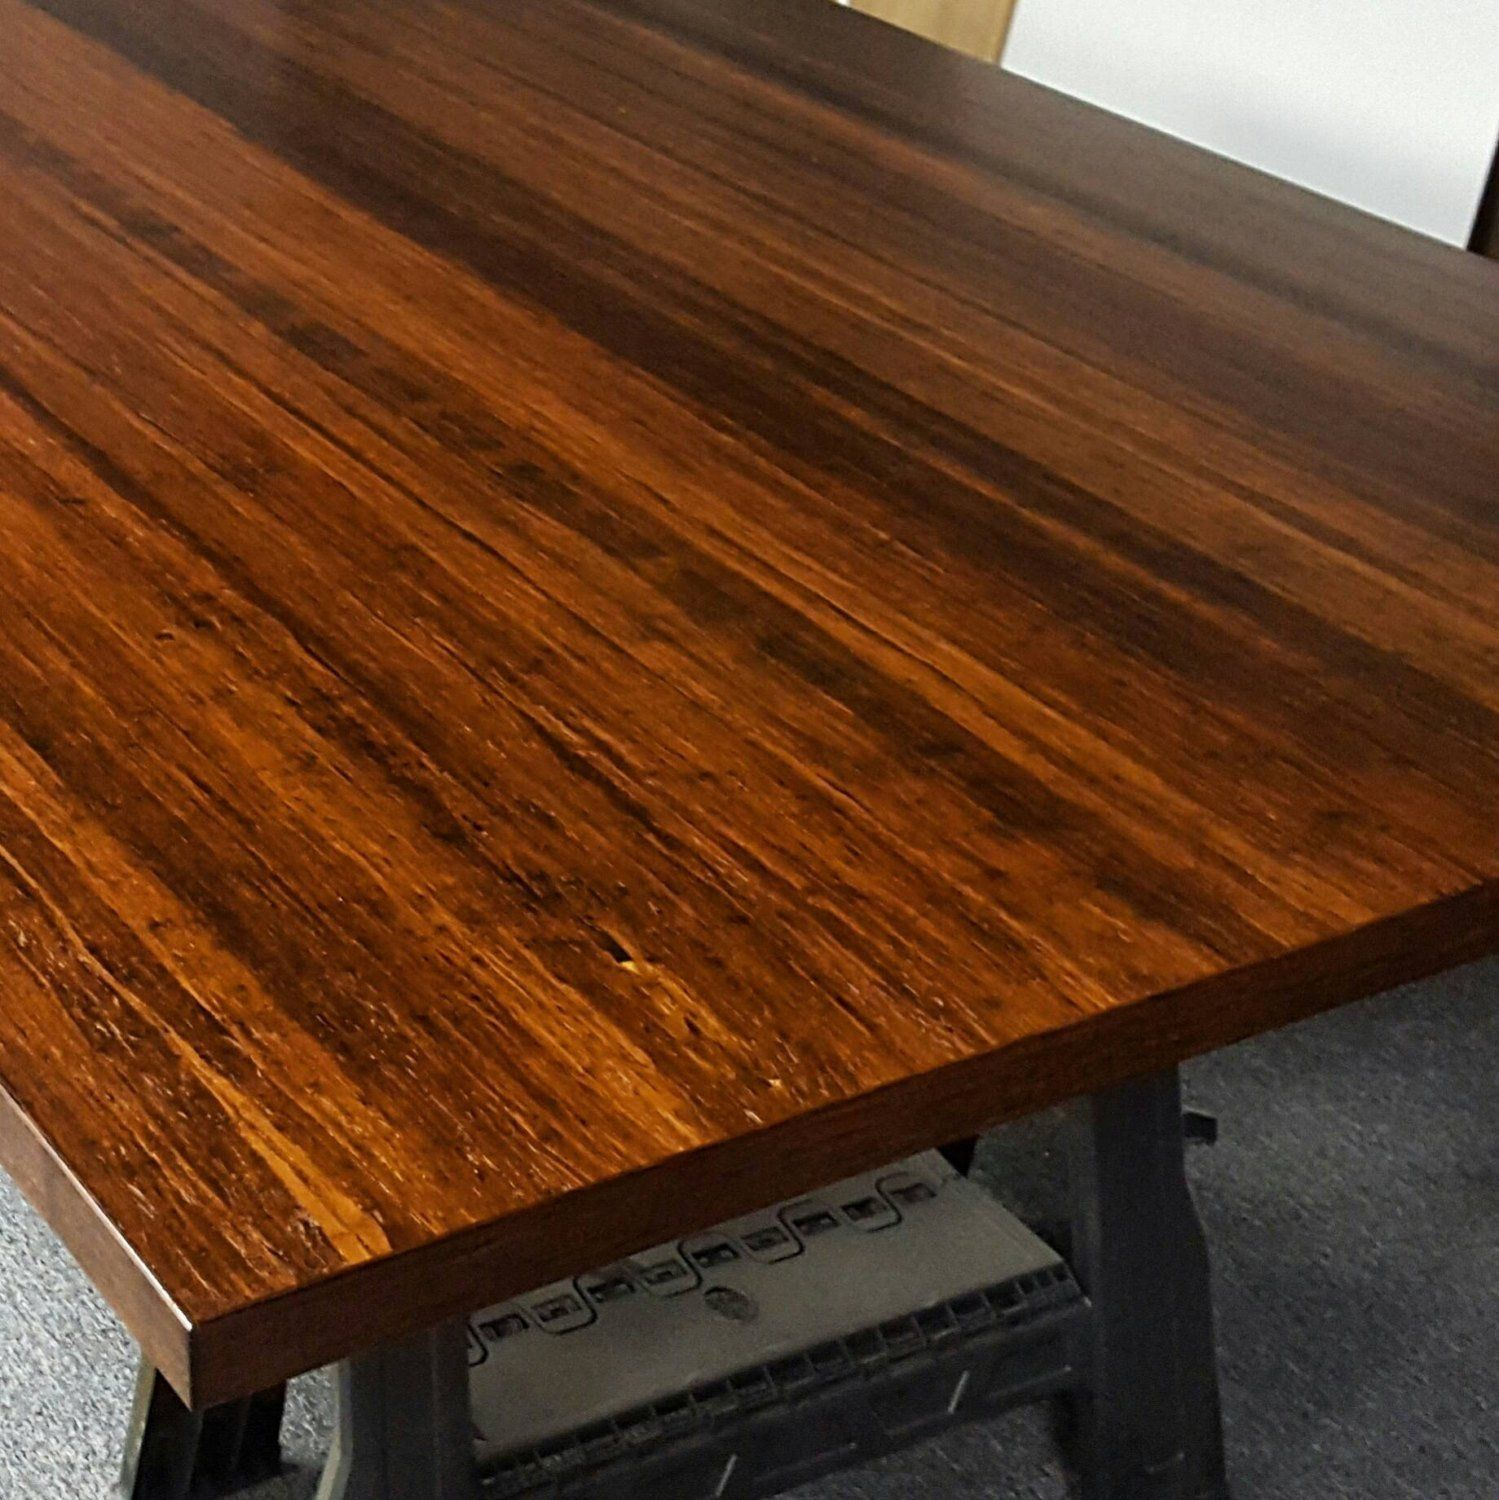 Bamboo Table Tops Bamboo Table Square Feet And Commercial - Commercial wood table tops